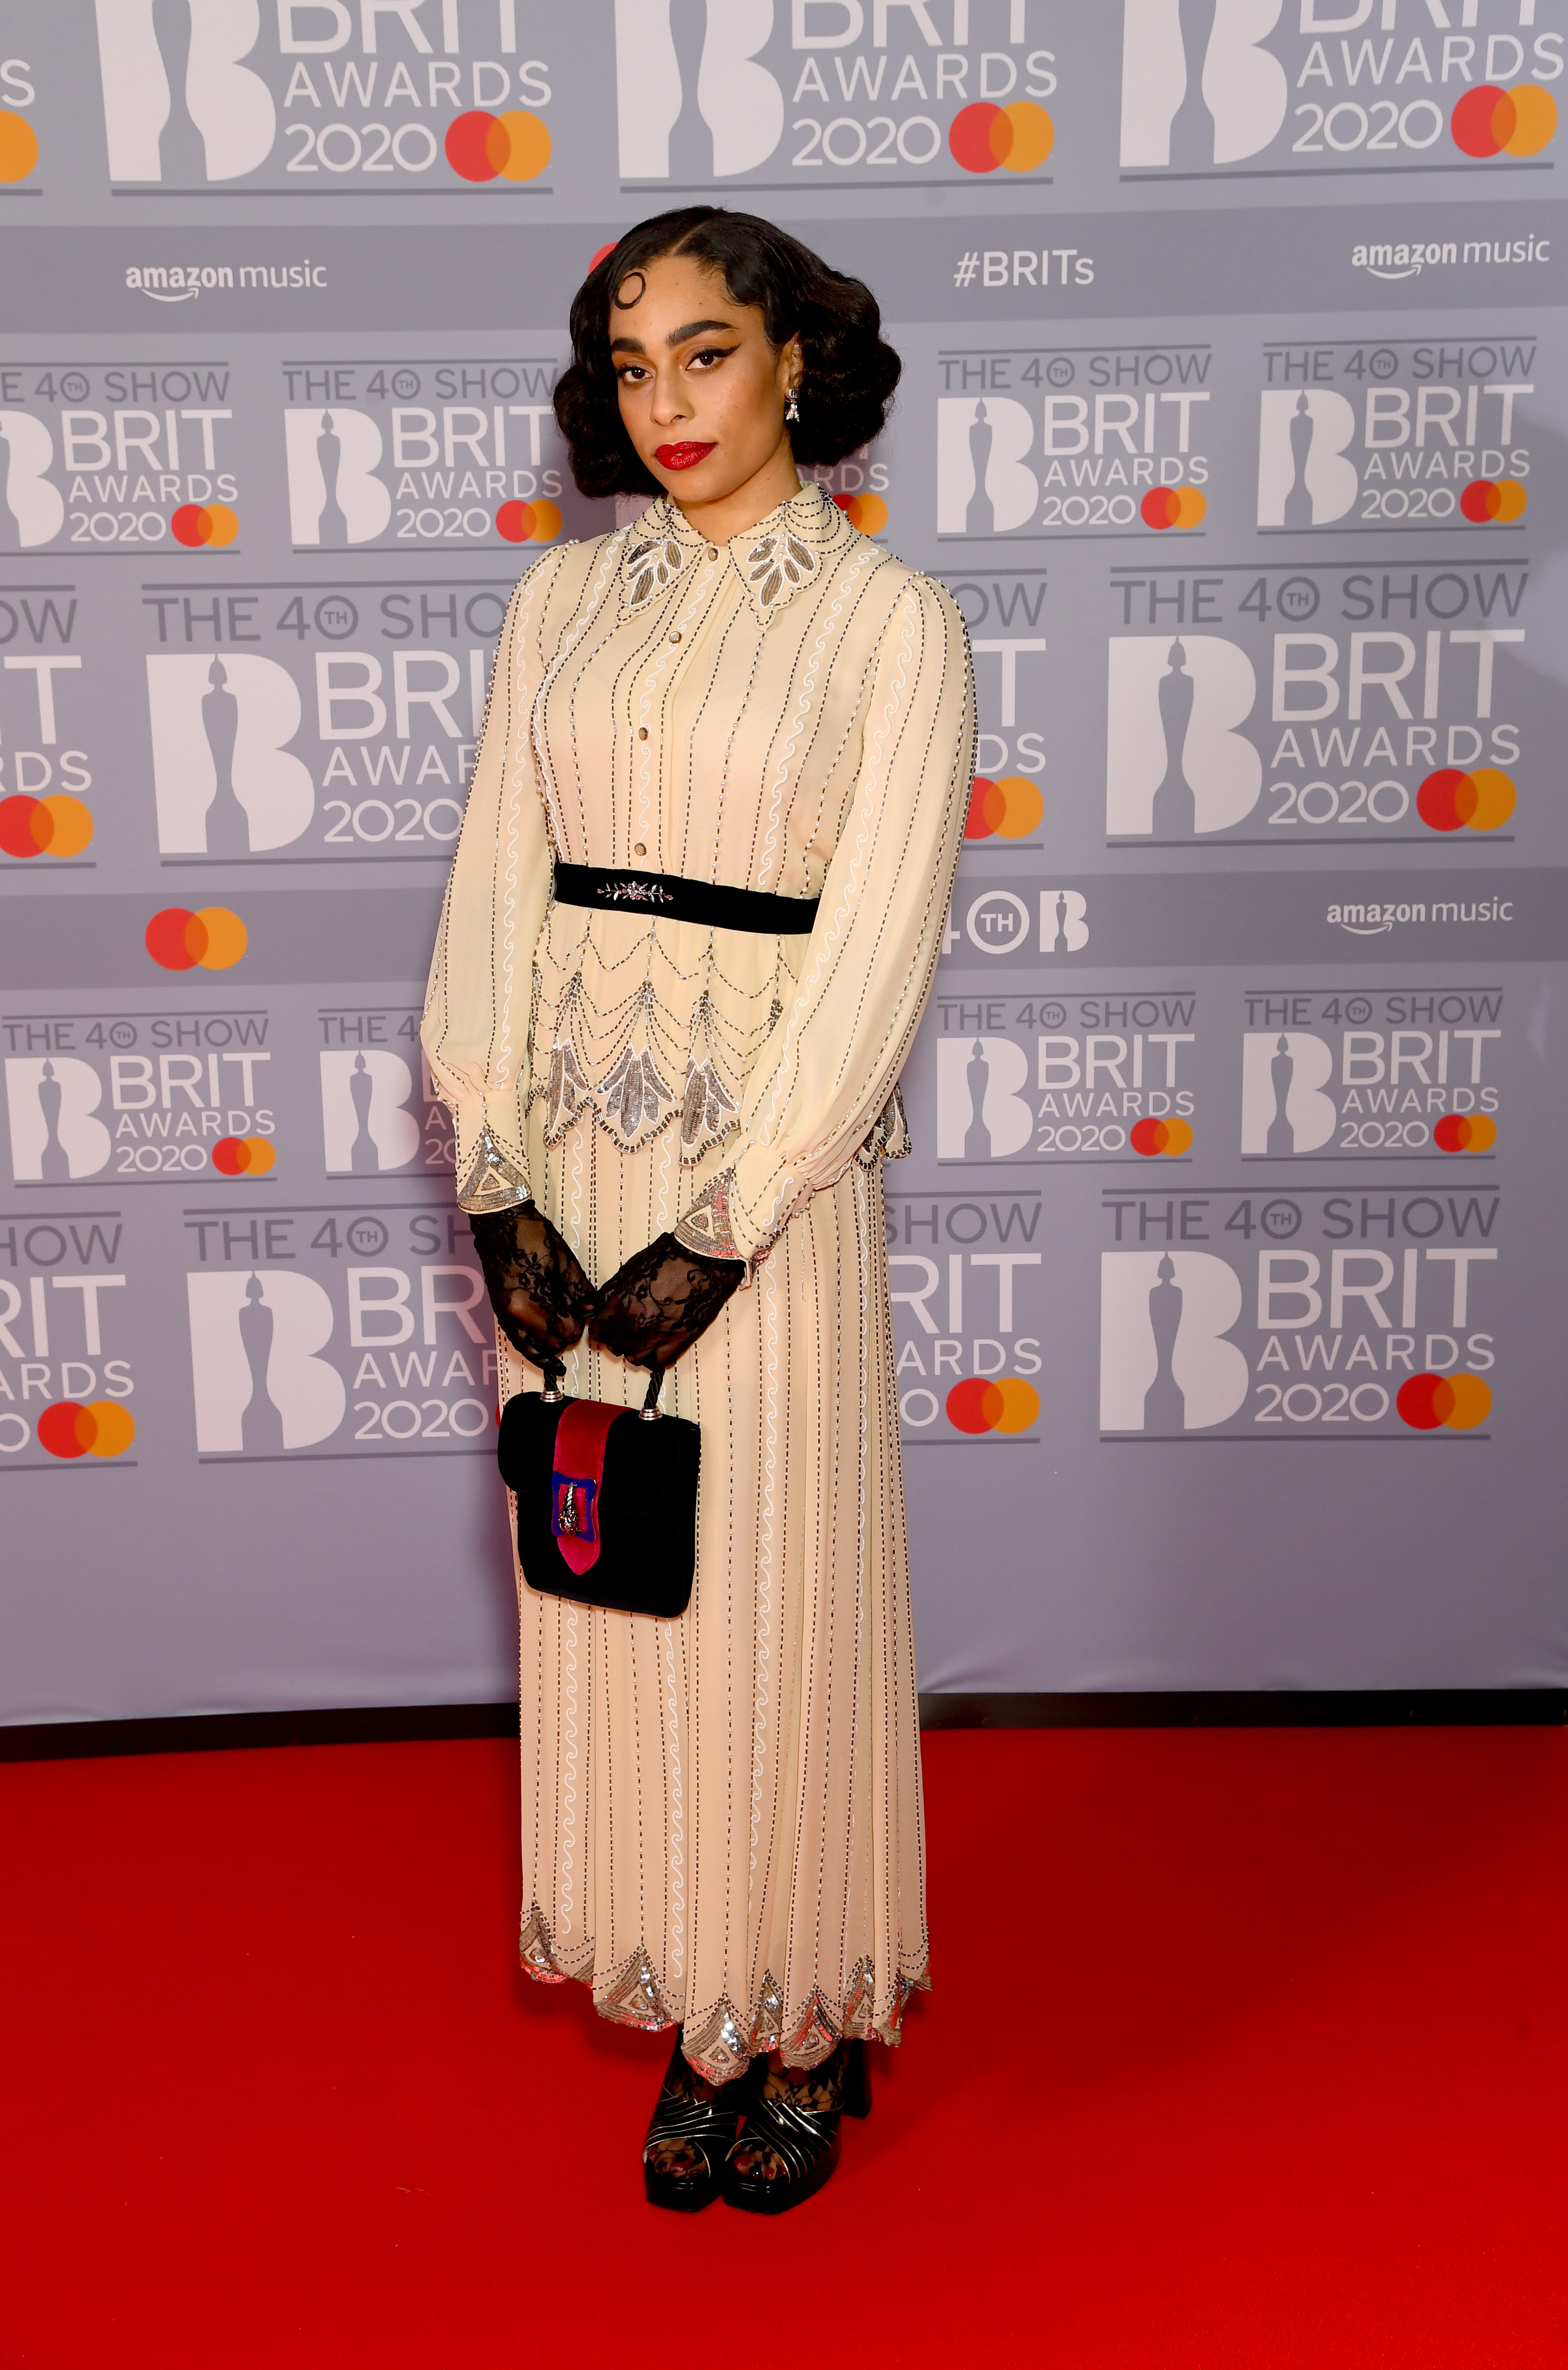 Celeste attends The BRIT Awards 2020 at The O2 Arena on February 18, 2020 in London, England. (Photo by Dave J Hogan/Getty Images)